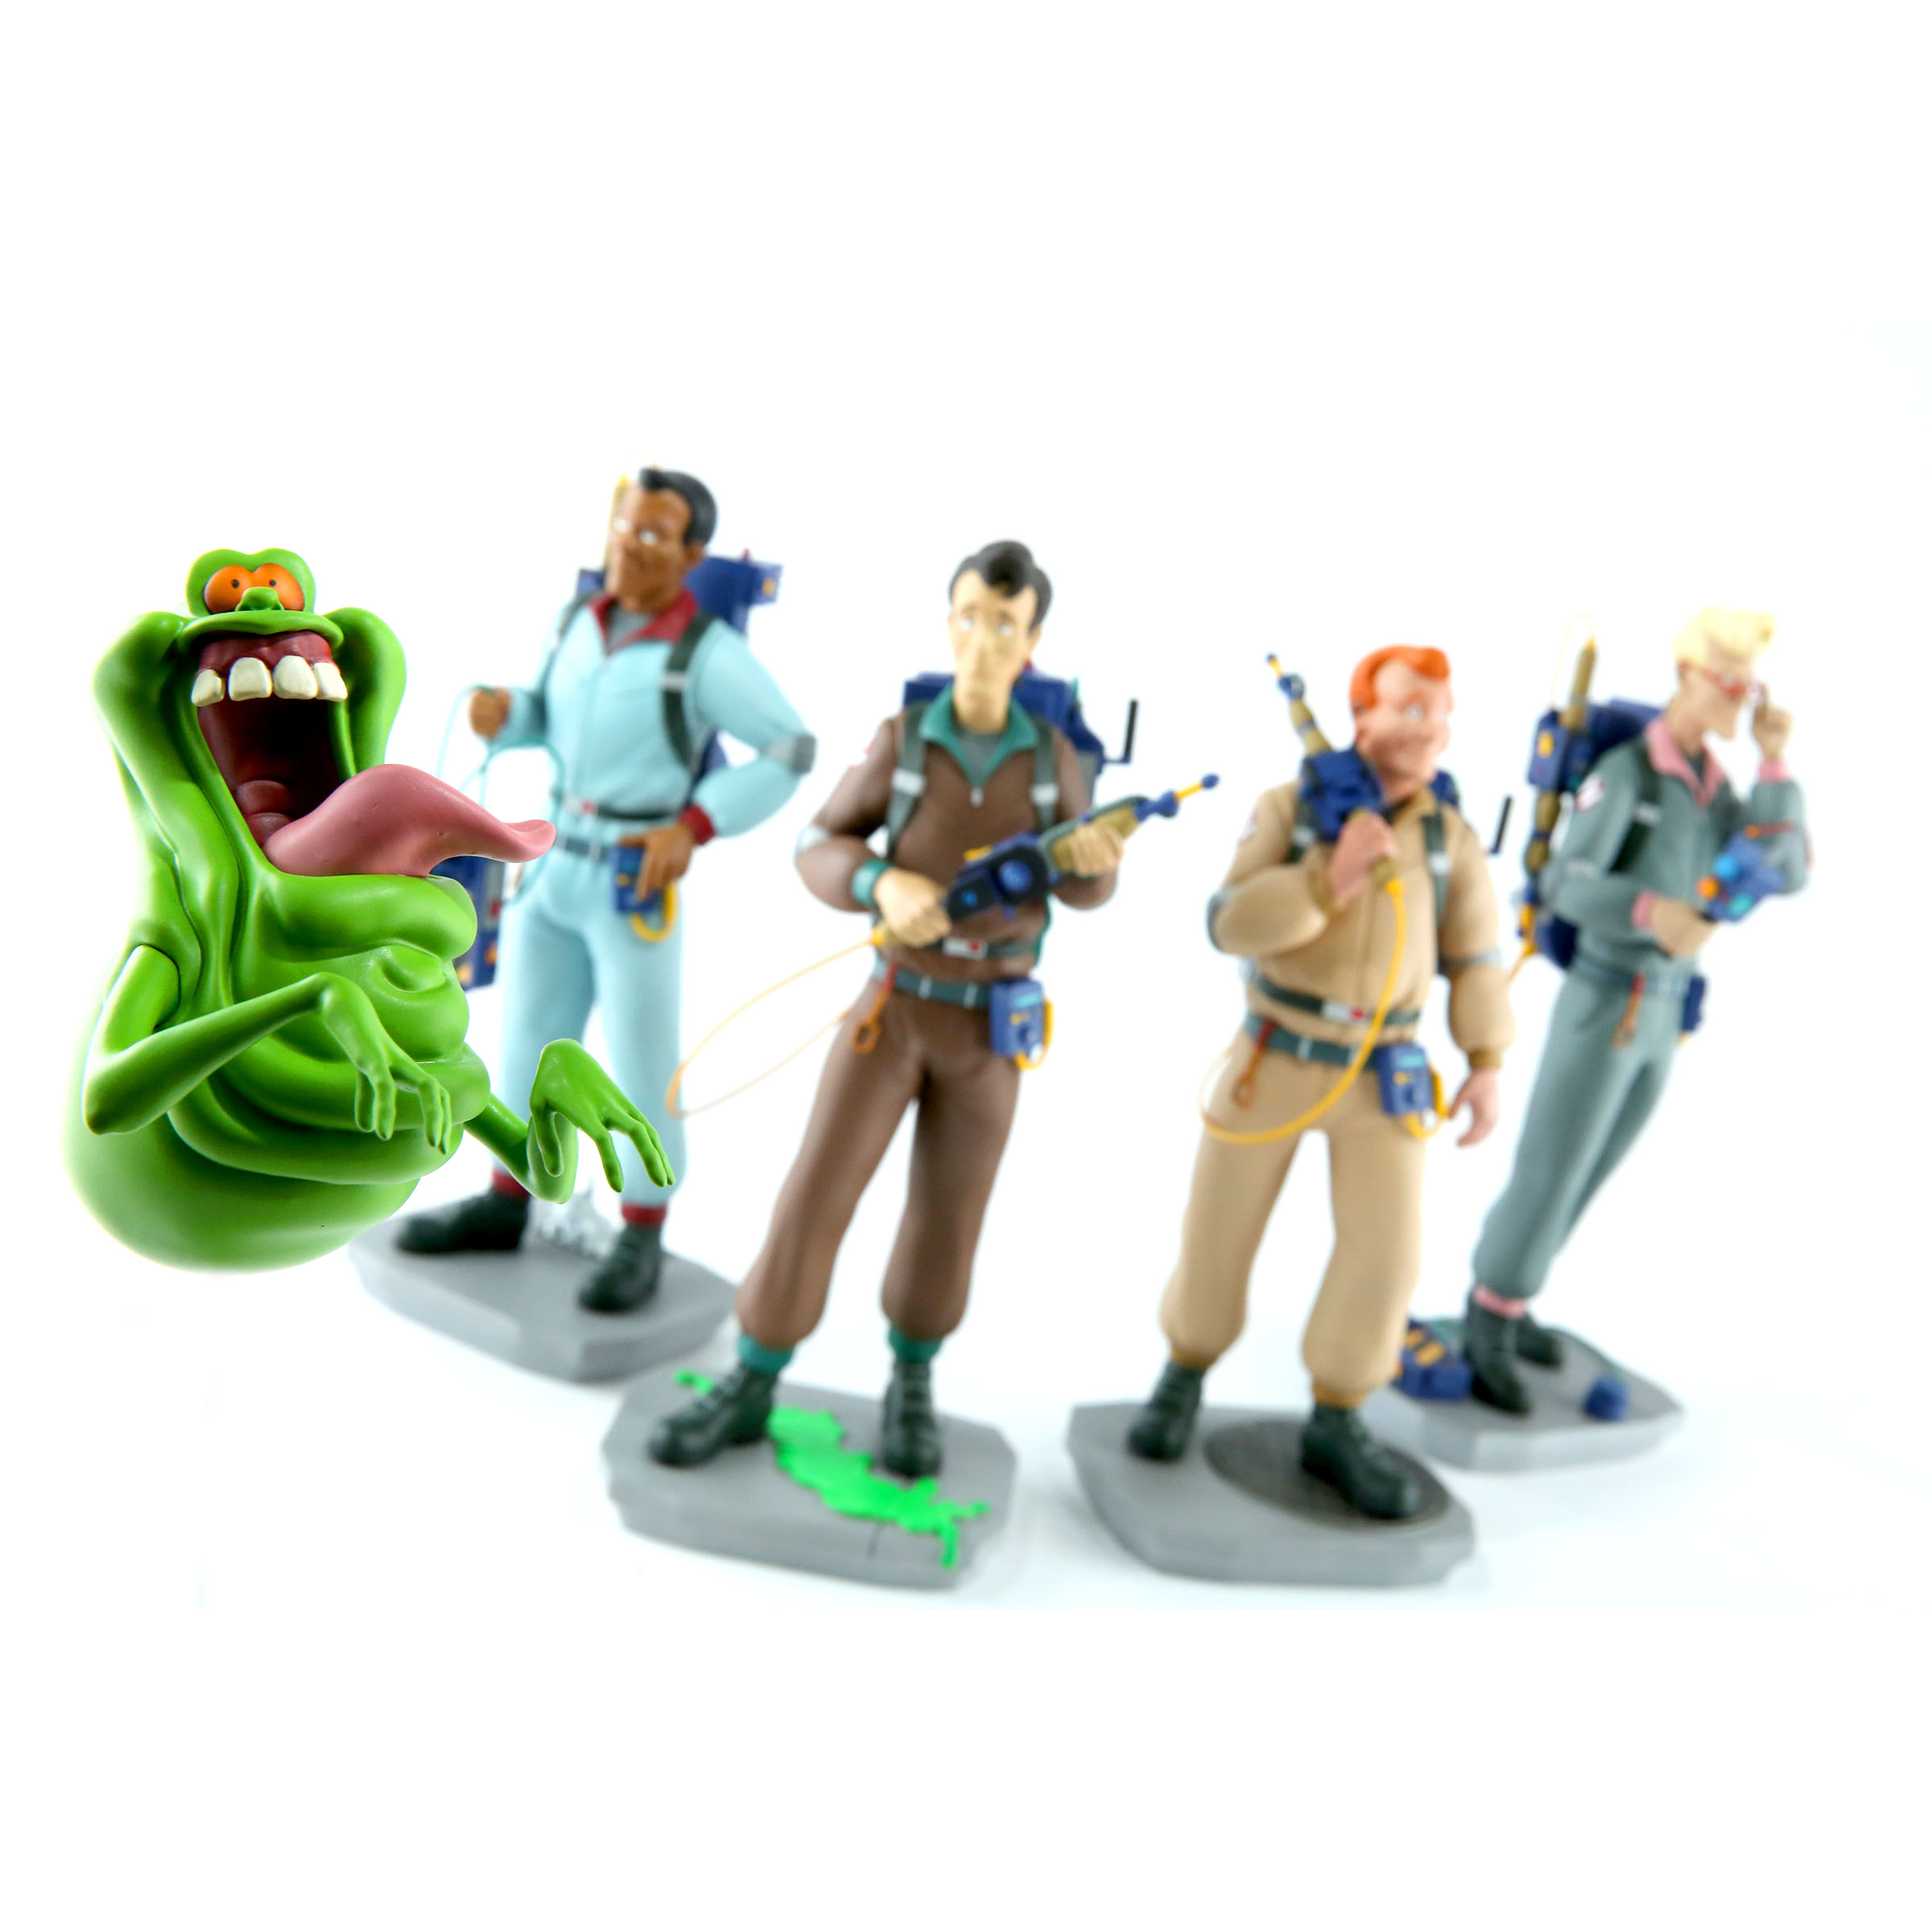 Link a The-Real-Ghostbusters-Statues-007